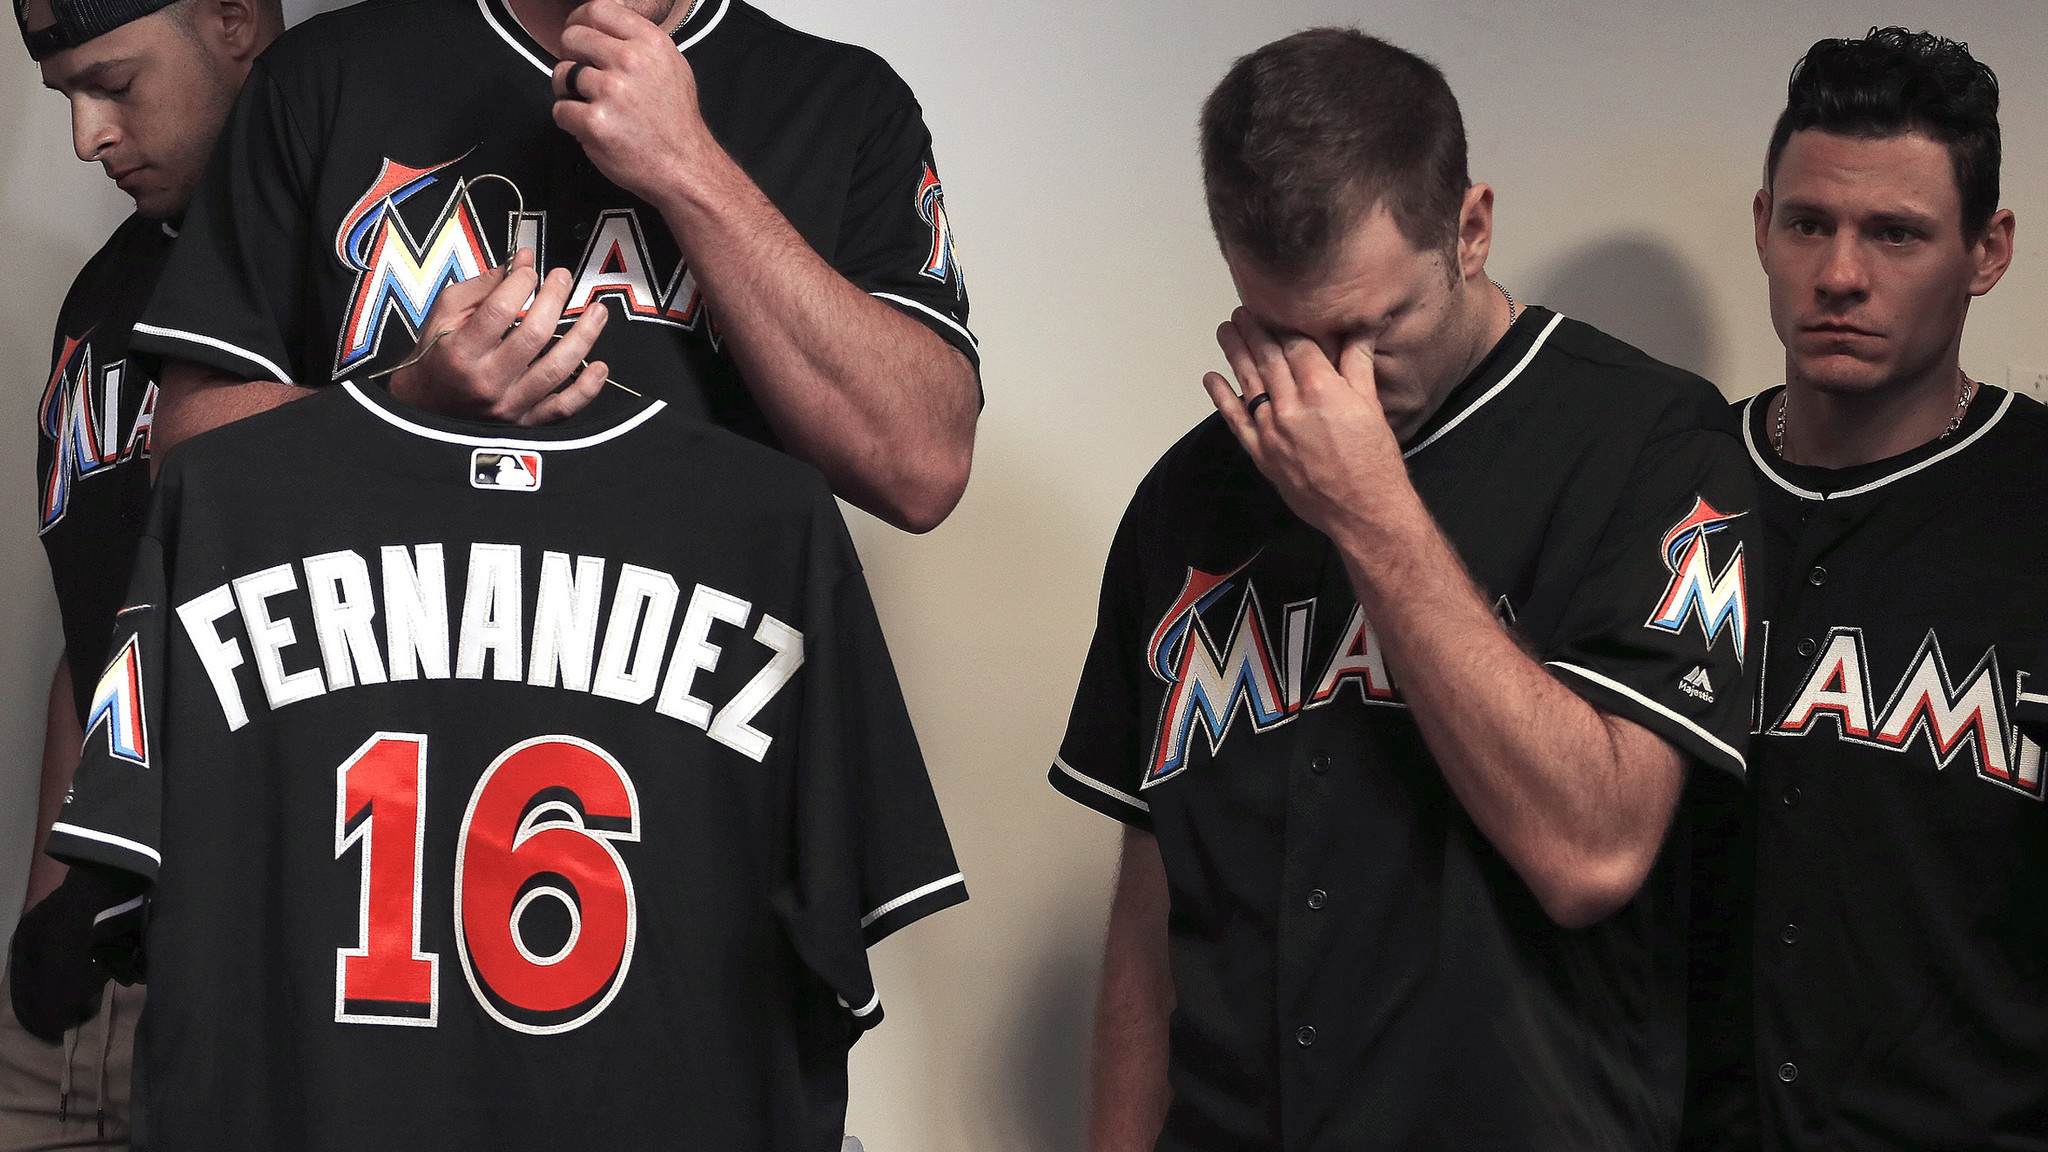 Sfl-marlins-wear-no-16-jerseys-honor-jose-fernandez-20160926